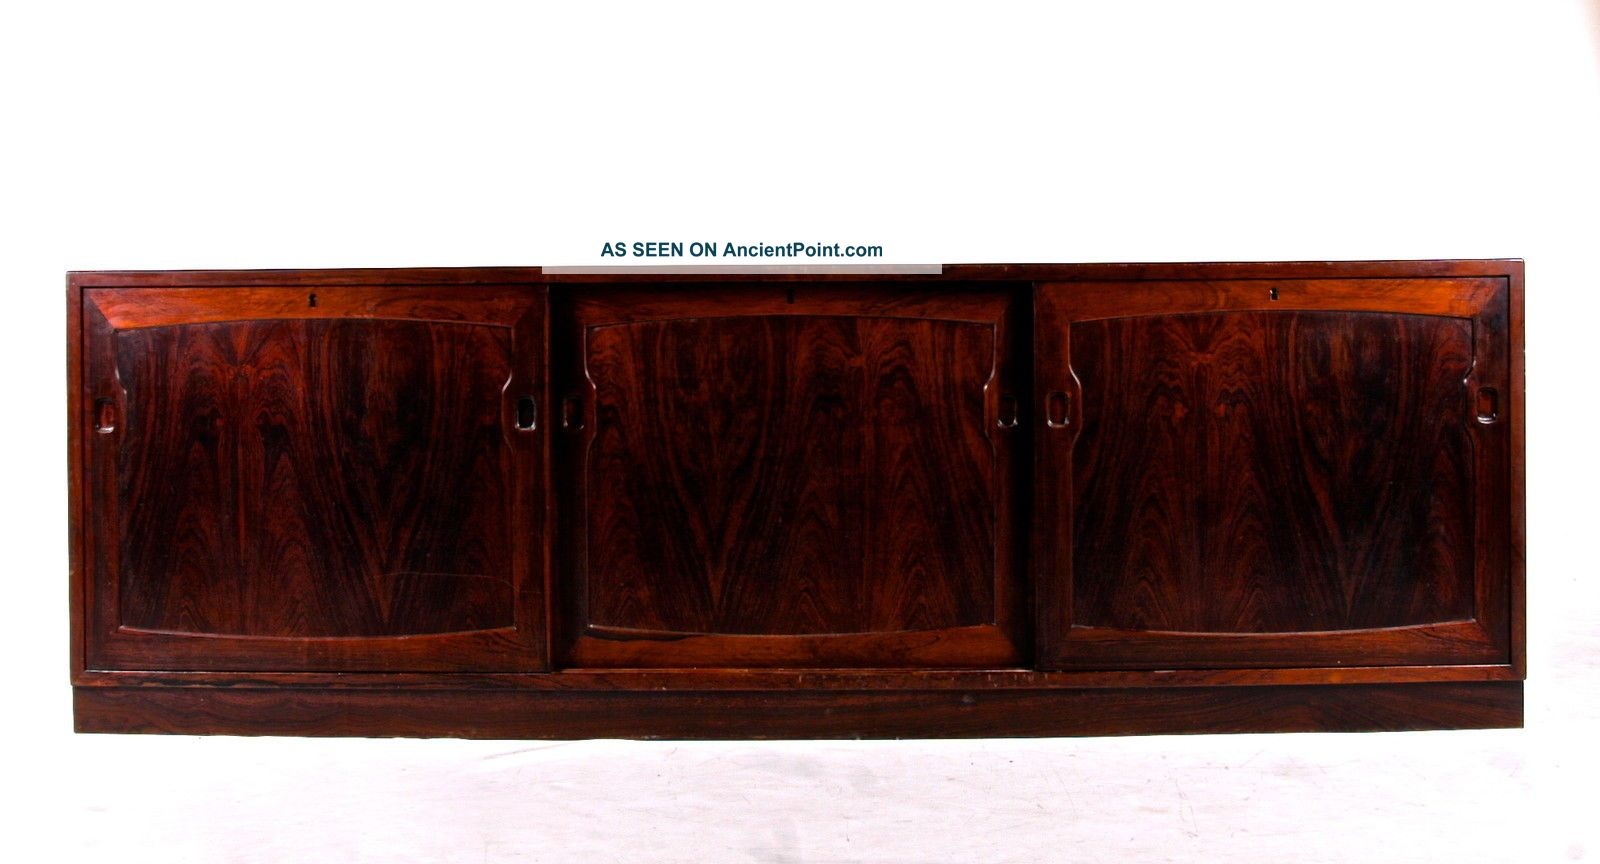 Retro Vintage Danish Rosewood Sideboard Low Record Tv Cabinet 60s 70s 1900-1950 photo